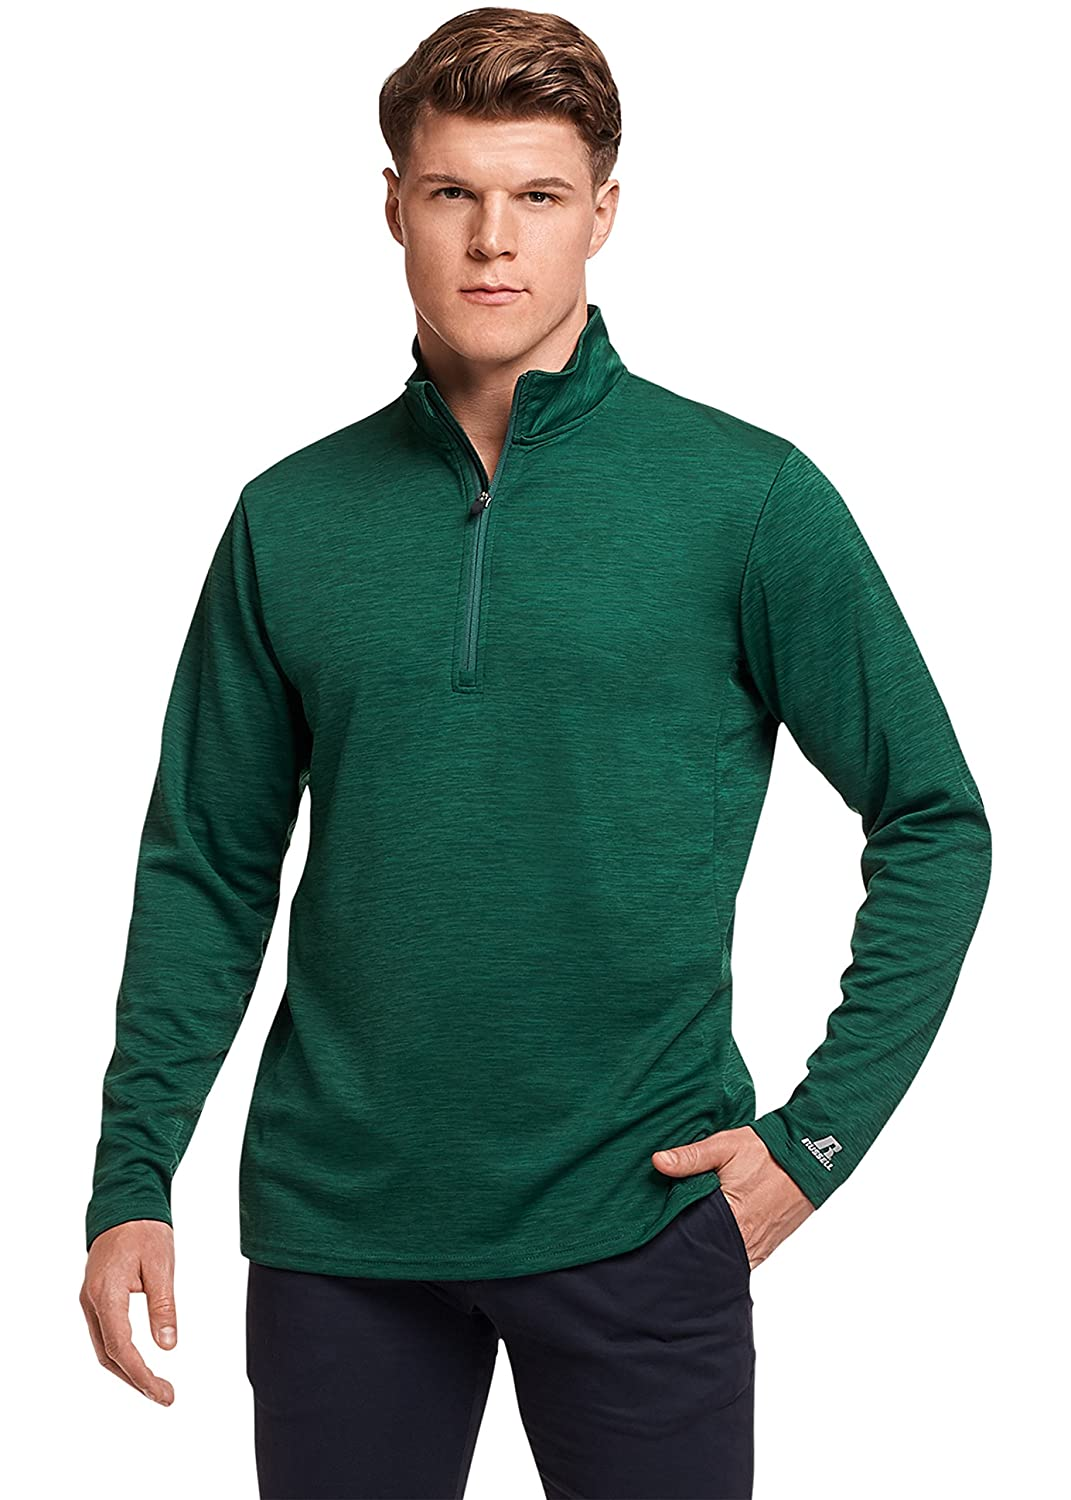 Russell Athletic Men's Lightweight Performance 1/4 Zip QZ7EAM0